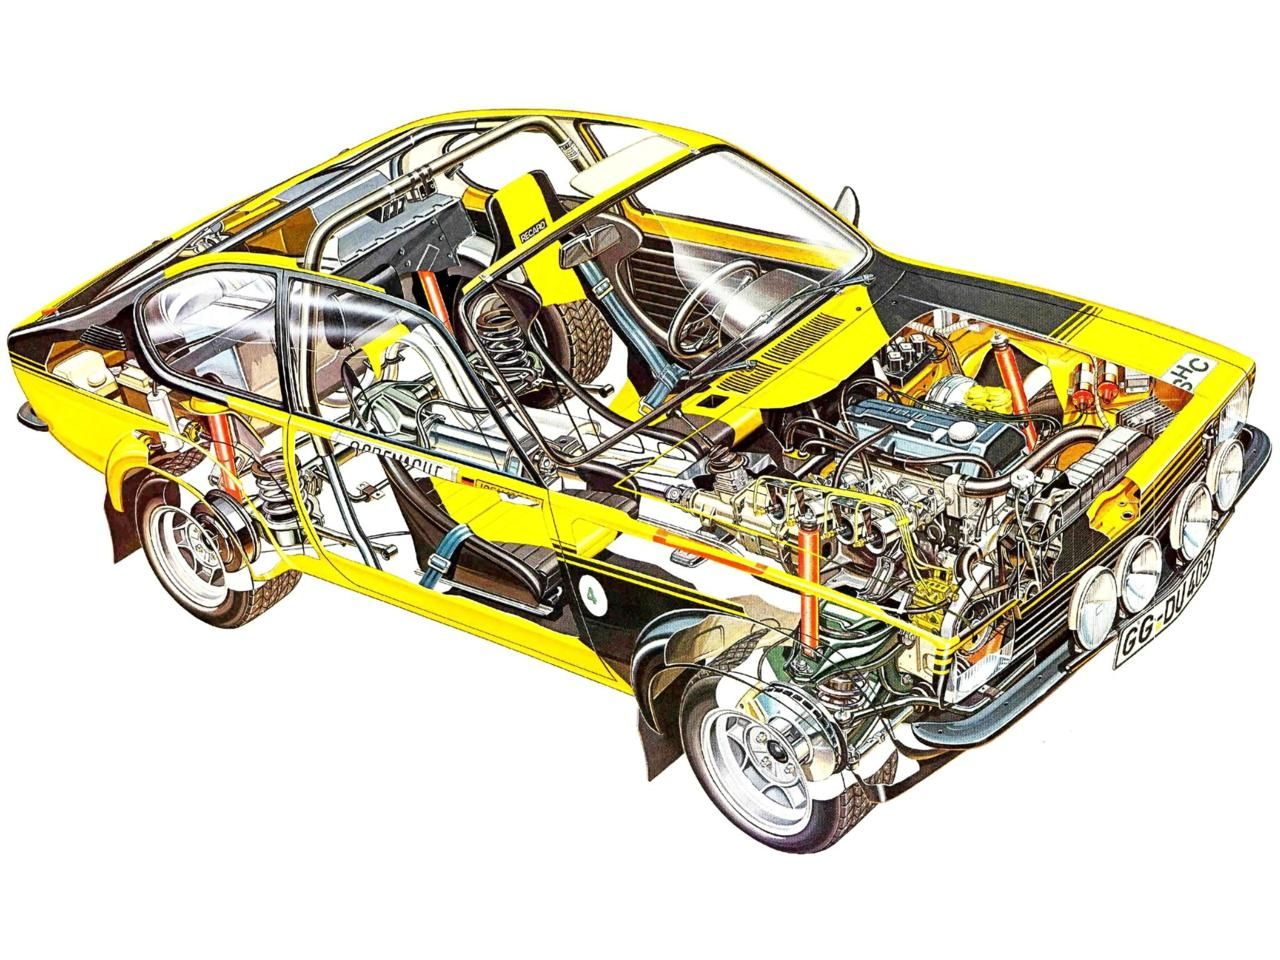 Image illustrative de l article opel ascona - Opel Kadett Gt E Rallye Car Illustration Unattributed